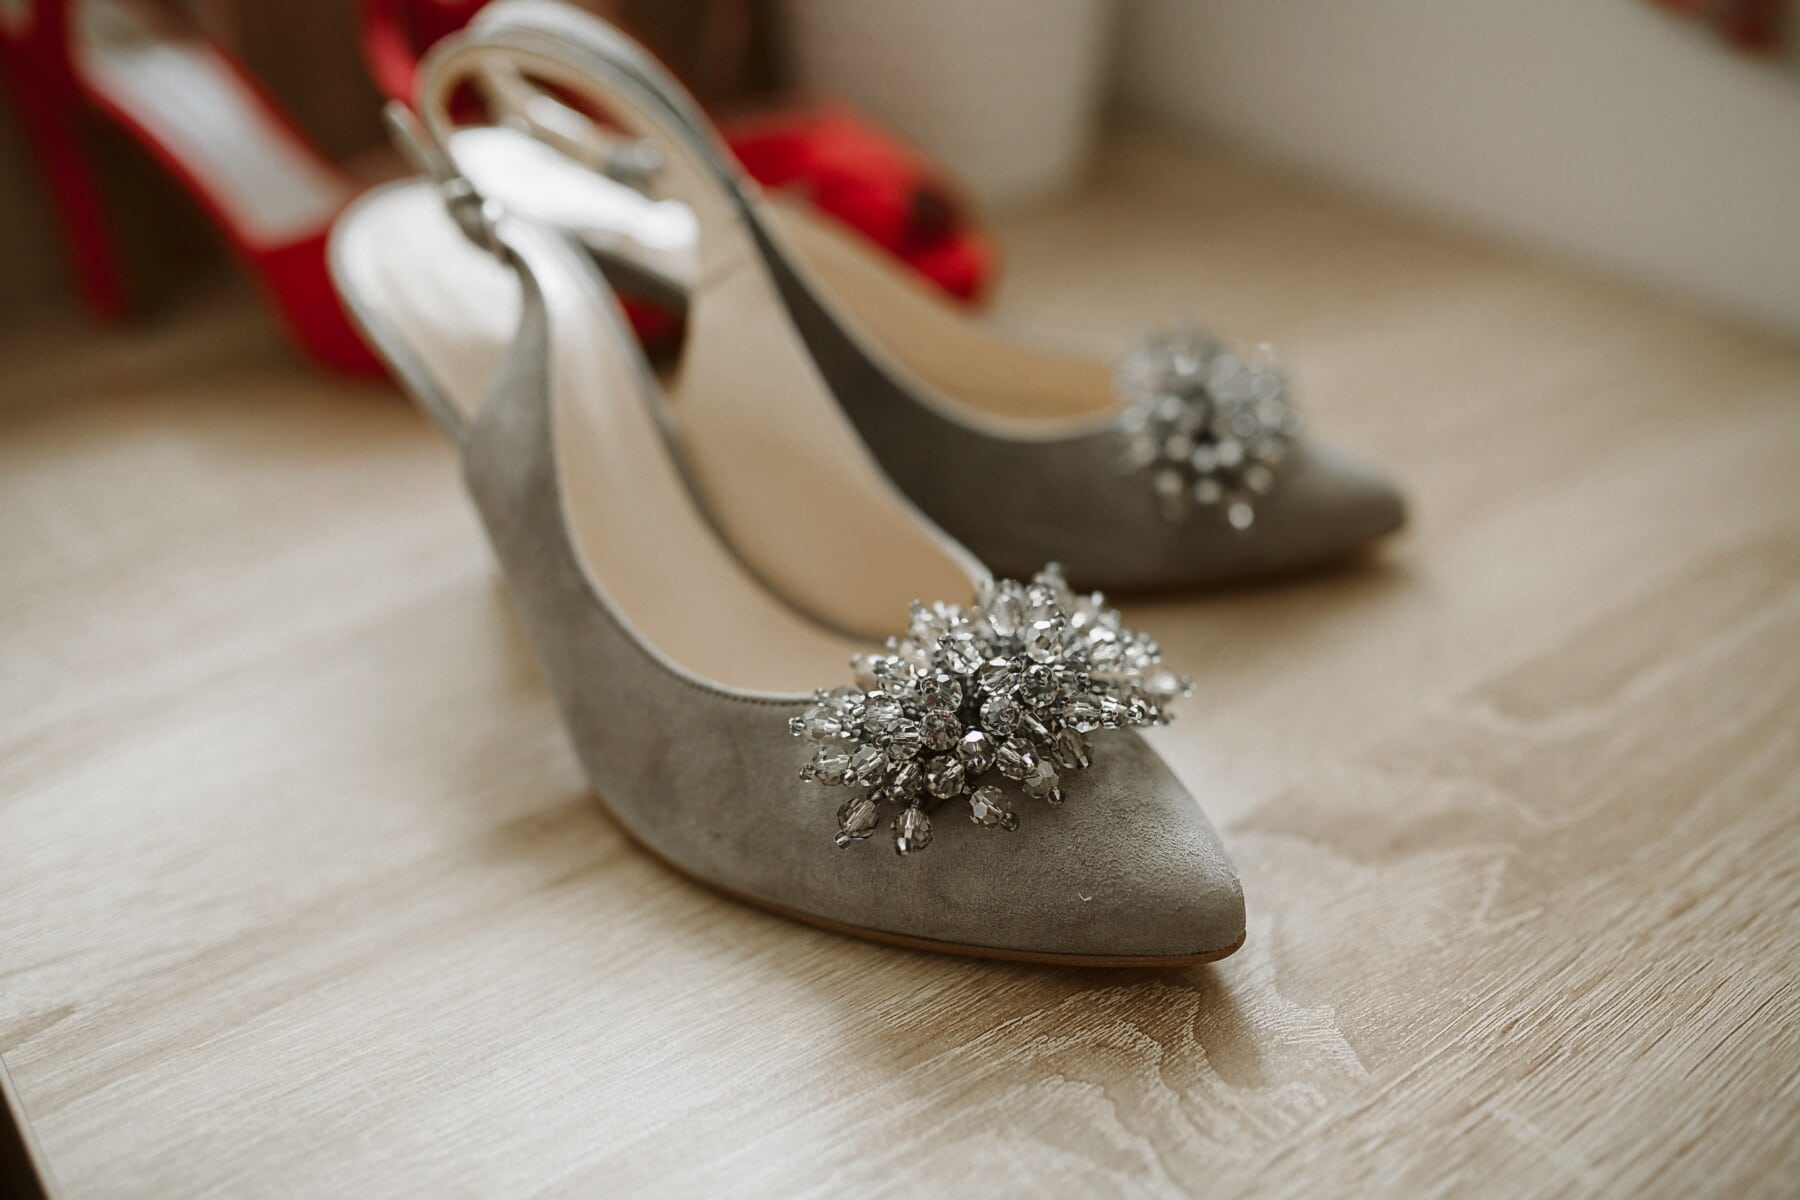 grey, glamour, accessory, sandal, fashion, footwear, shoes, shoe, wood, still life